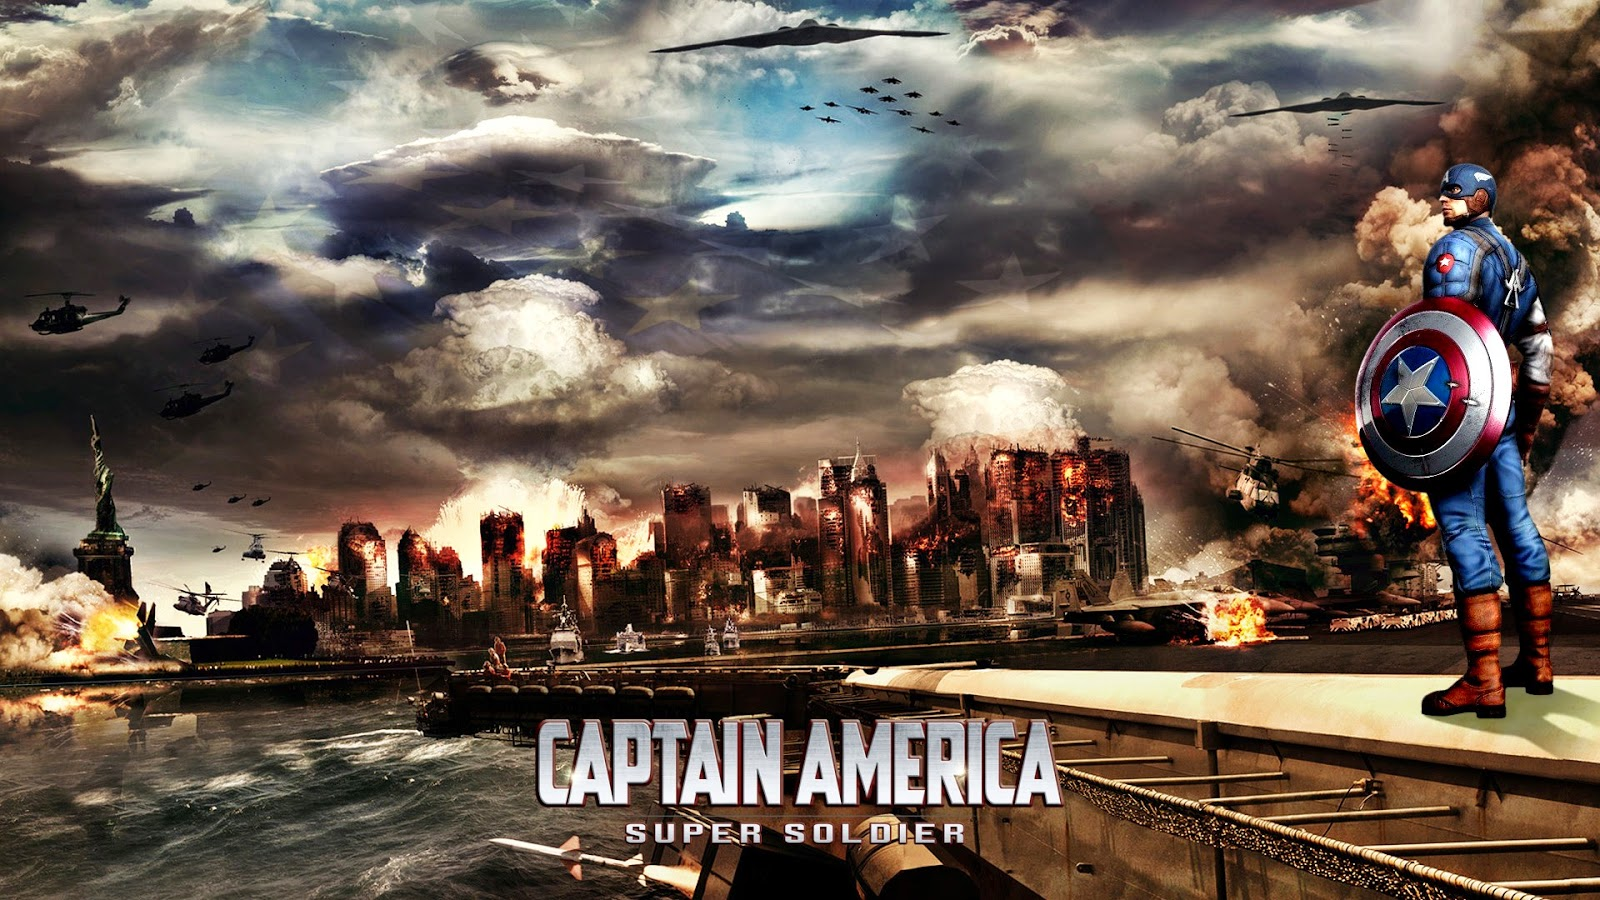 Captain-America-Movie-WallSheets-Desktop-and-Backgrounds-wallpaper-wp4604573